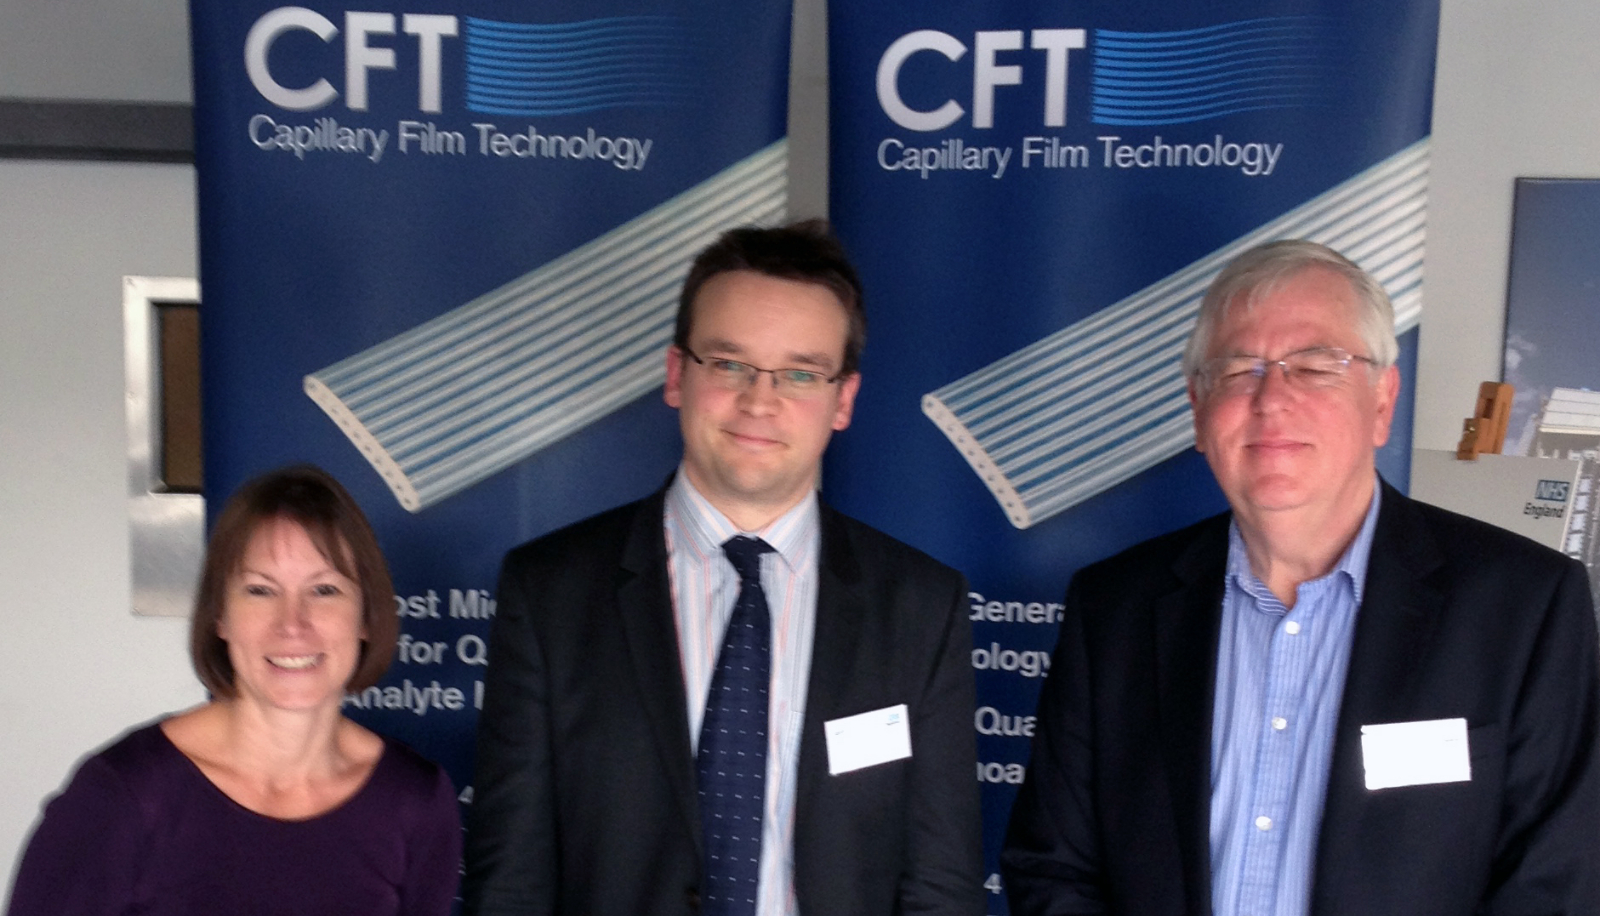 •	Dr Al Edwards of CFT, centre, with the Oxford AHSN's Julie Hart and Hugh Penfold